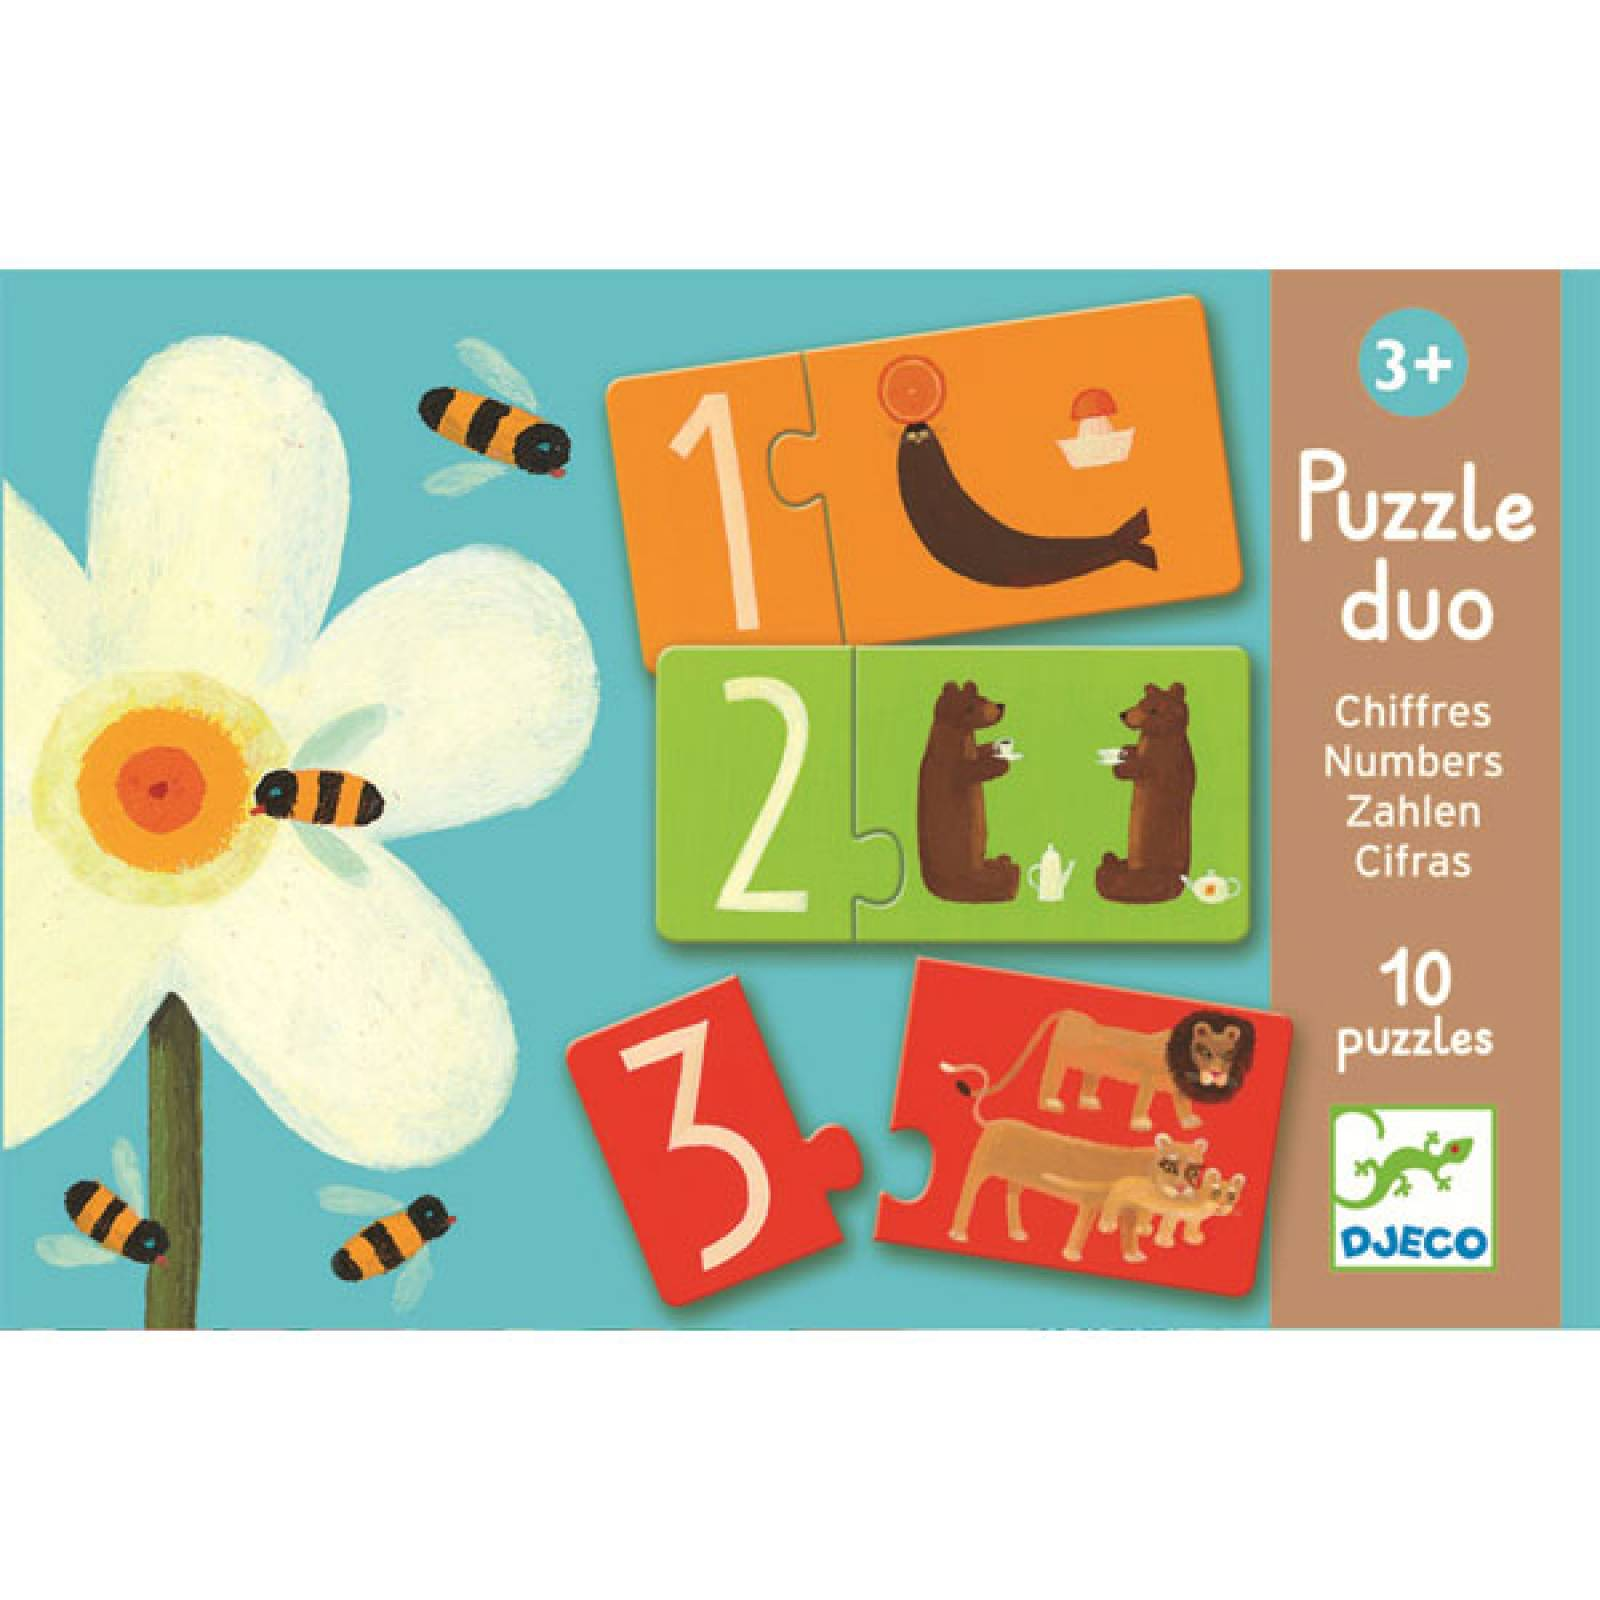 Number Puzzle Duo Game By Djeco 2+ thumbnails